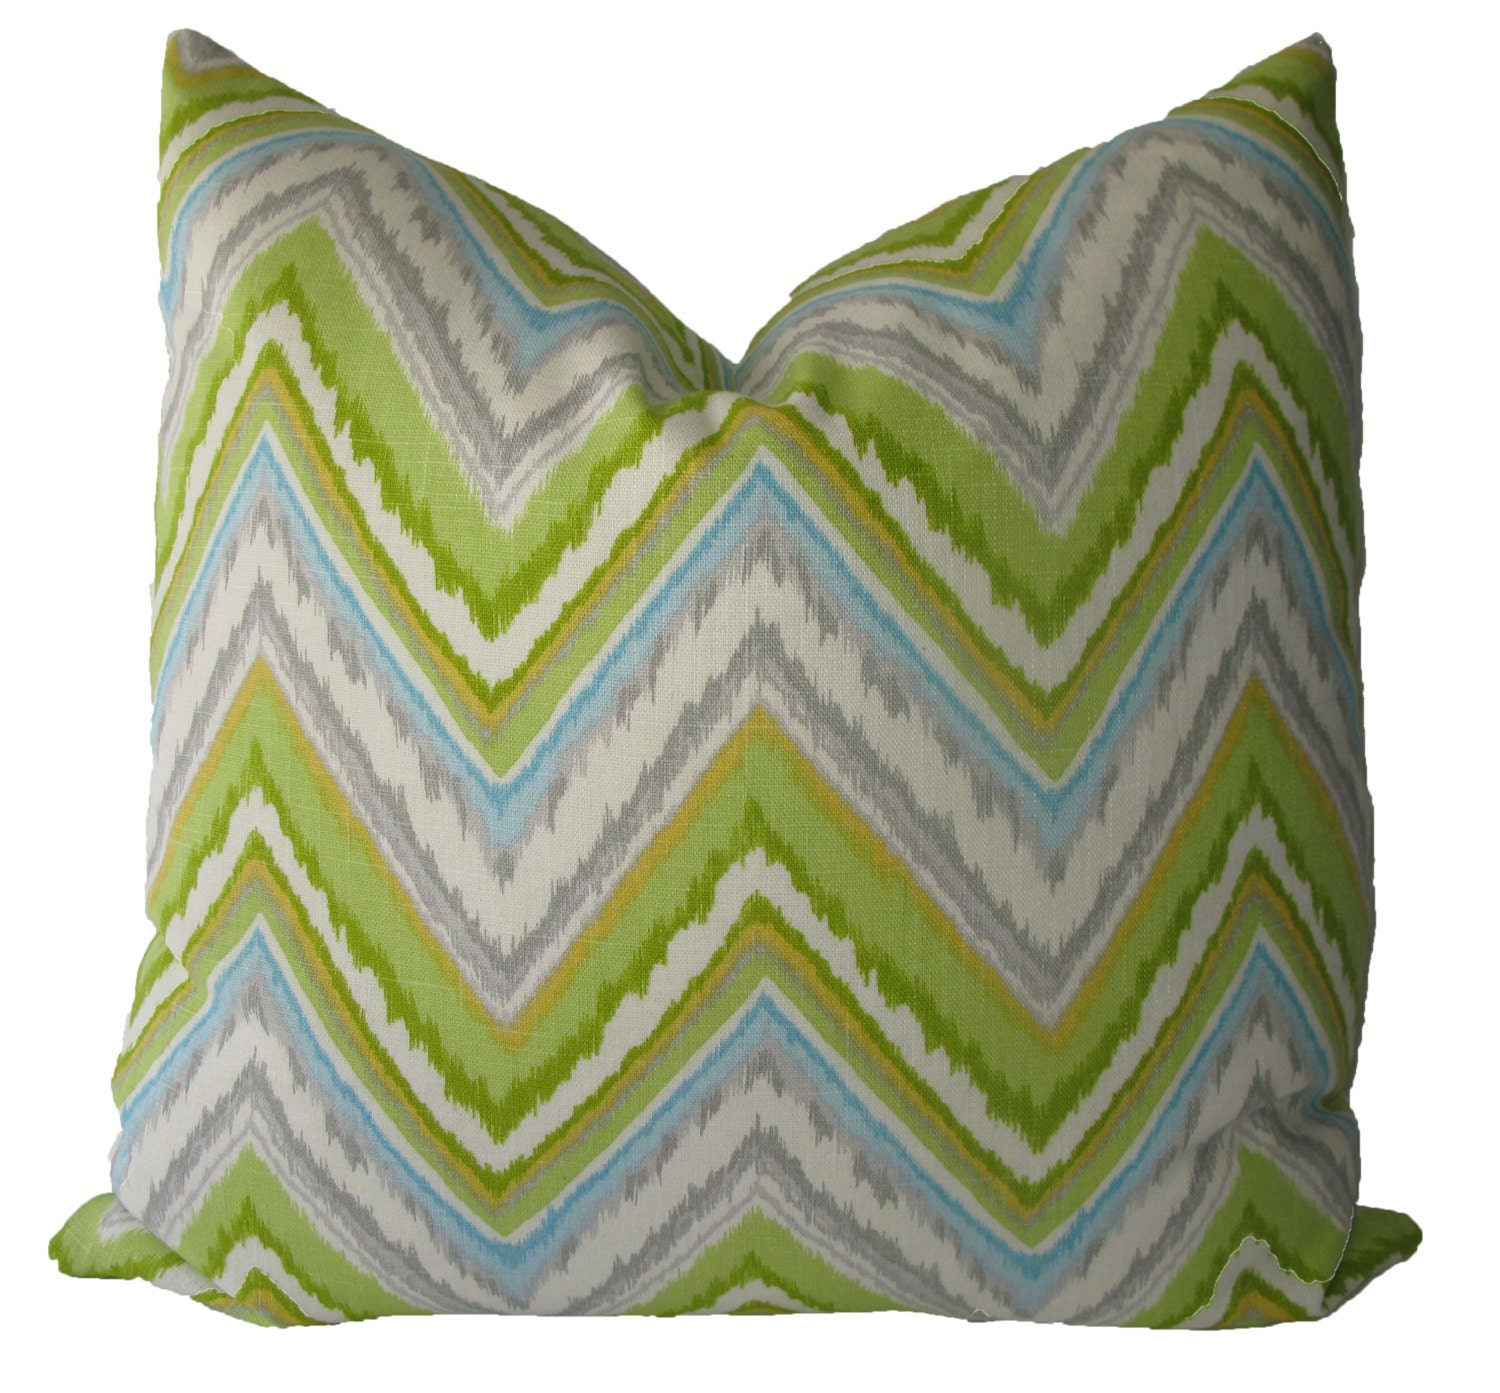 Decorative Throw Pillows Etsy : Decorative Designer Ikat Chevron Pillow Cover by MakingFabulous